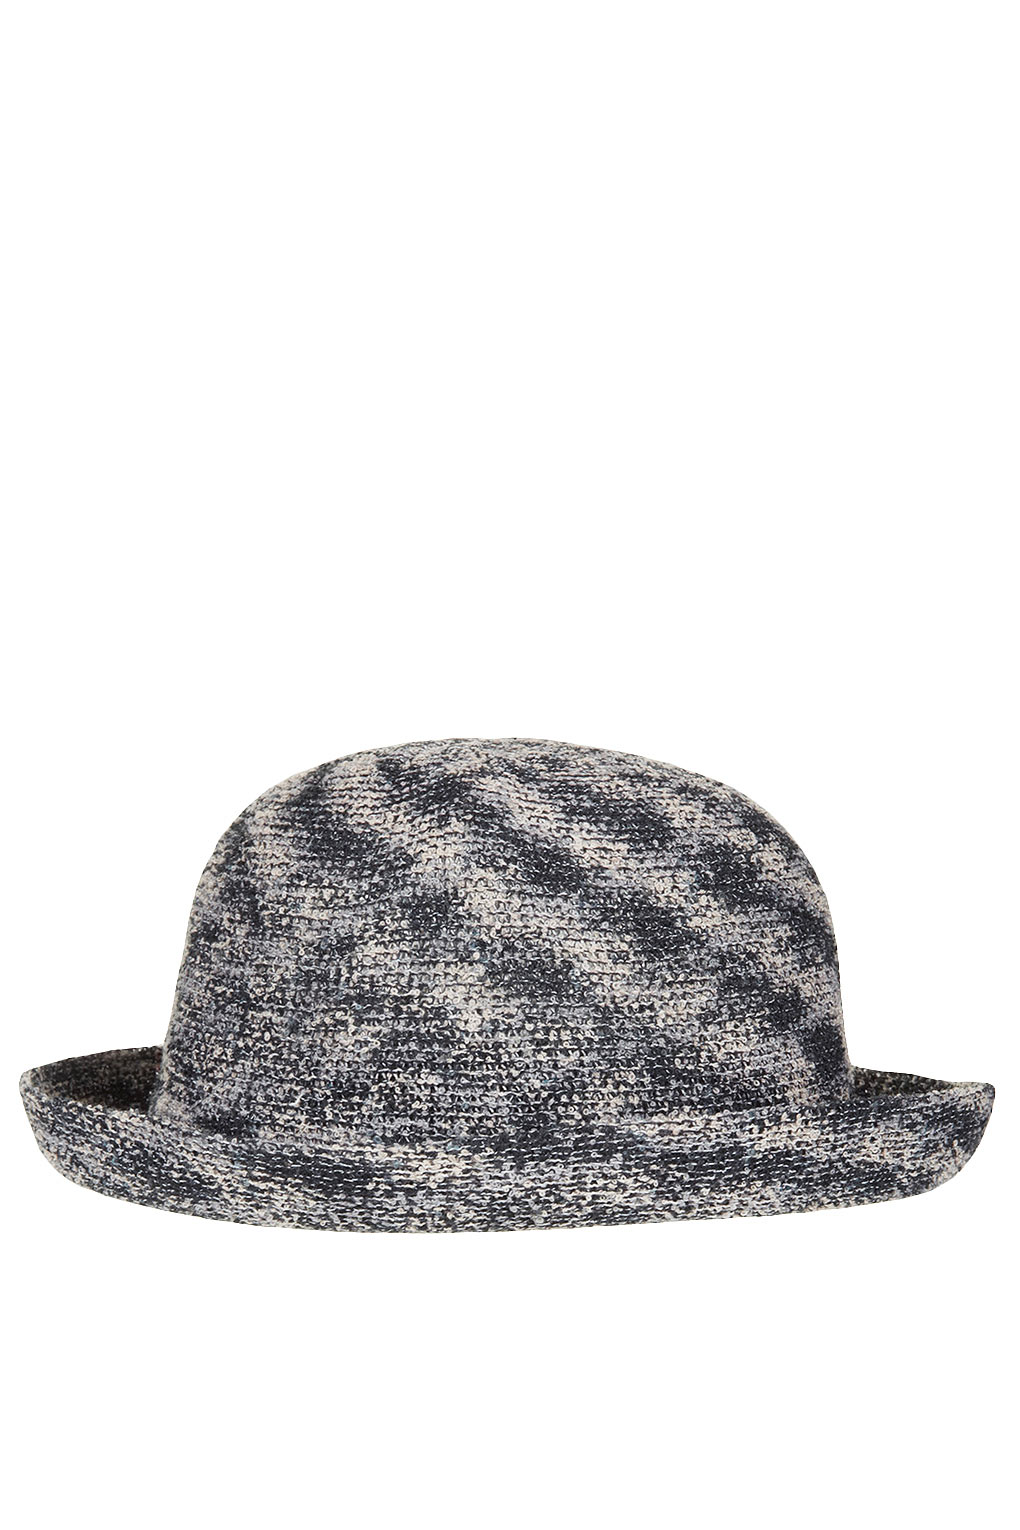 bdc38a84f8447 Lyst - TOPSHOP Transitional Bowler Hat in Gray